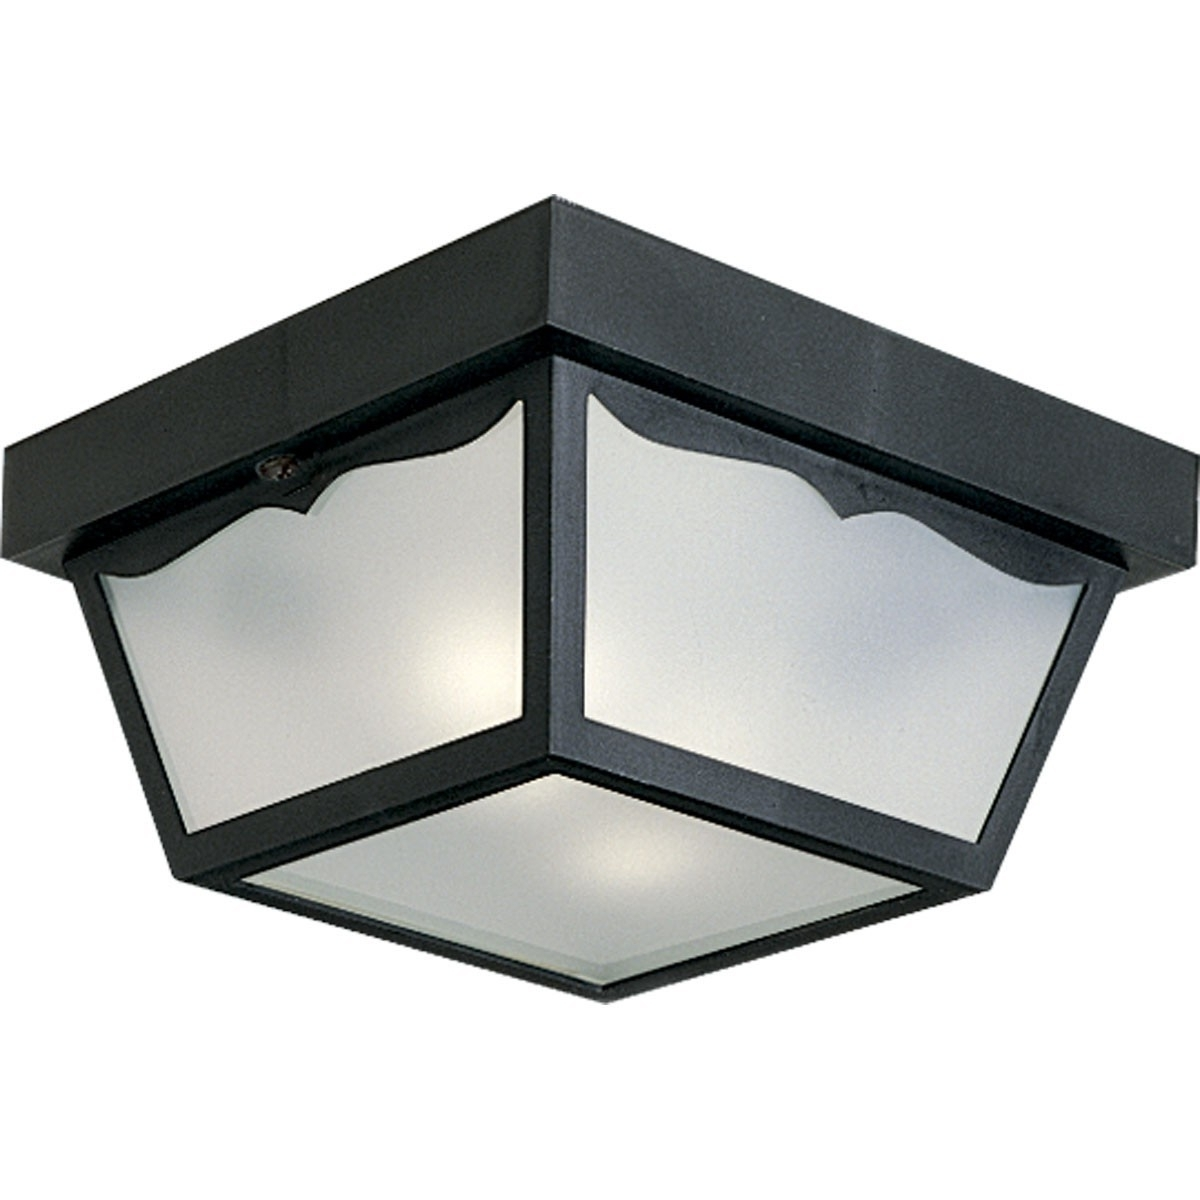 Outdoor Ceiling Lights Regarding Well Known 60w Outdoor Flush Mount Non Metallic Ceiling Light – Progress (View 4 of 20)